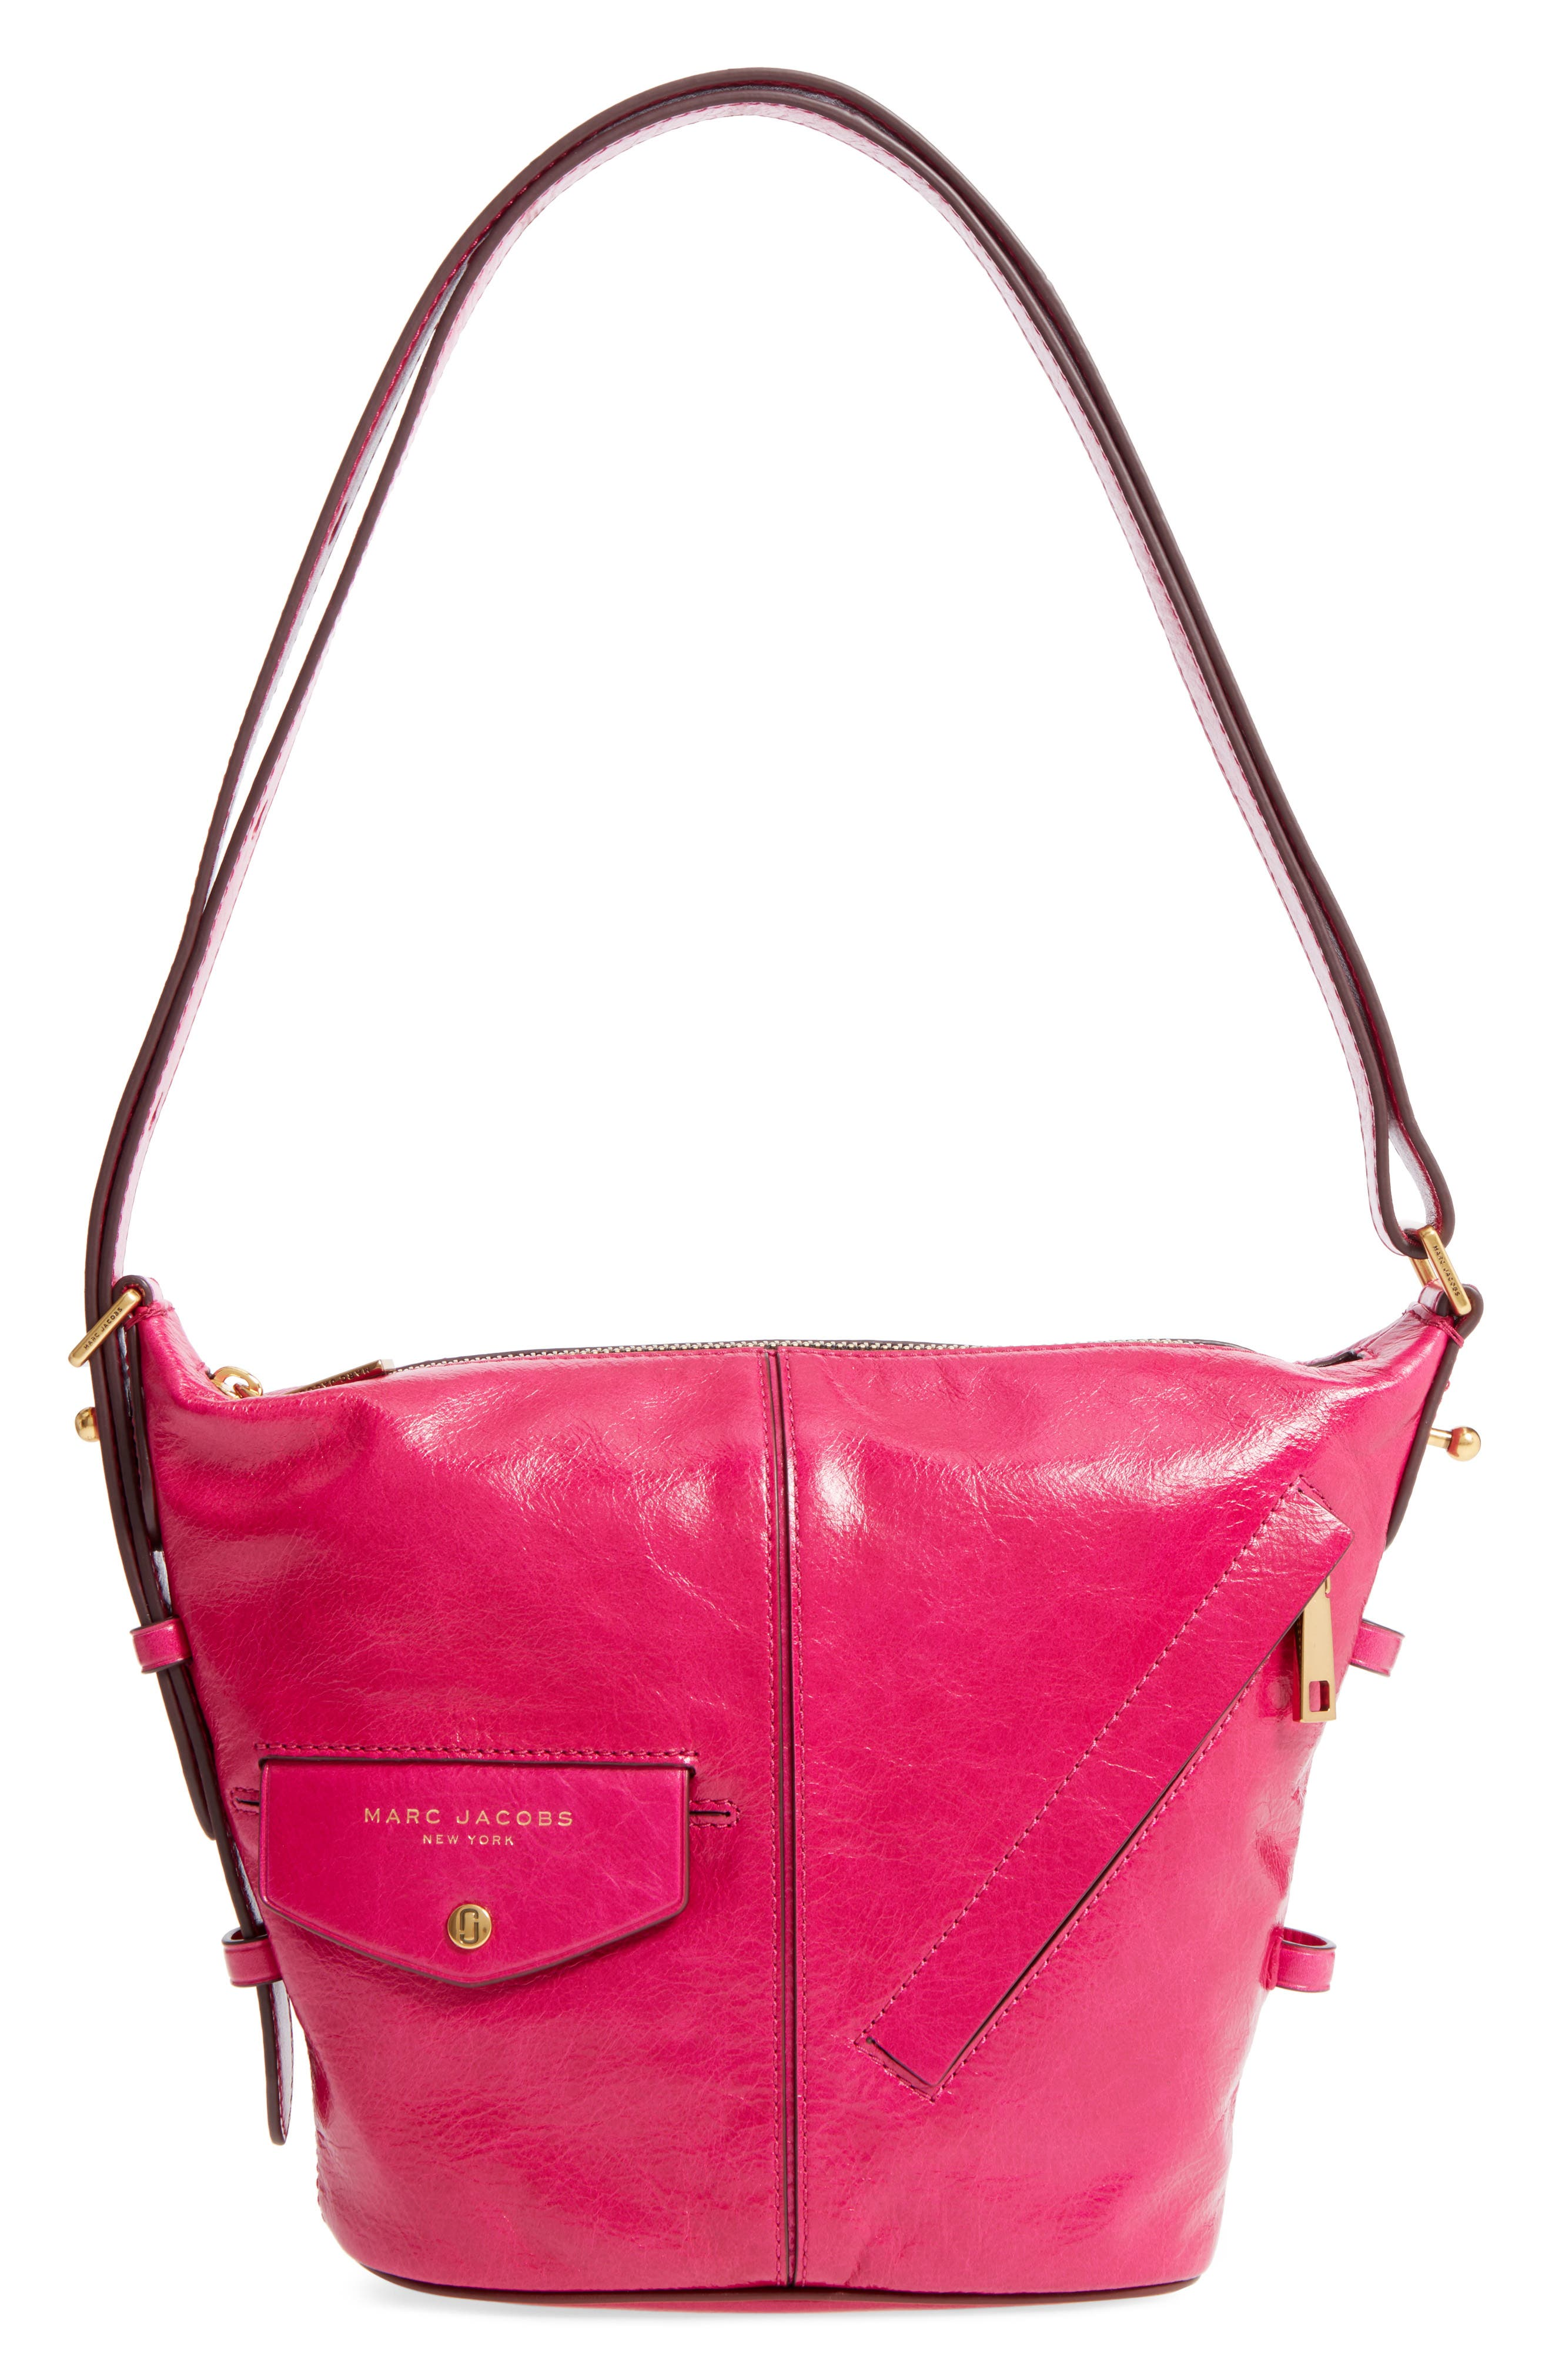 Main Image - MARC JACOBS The Vintage Mini Sling Convertible Leather Hobo